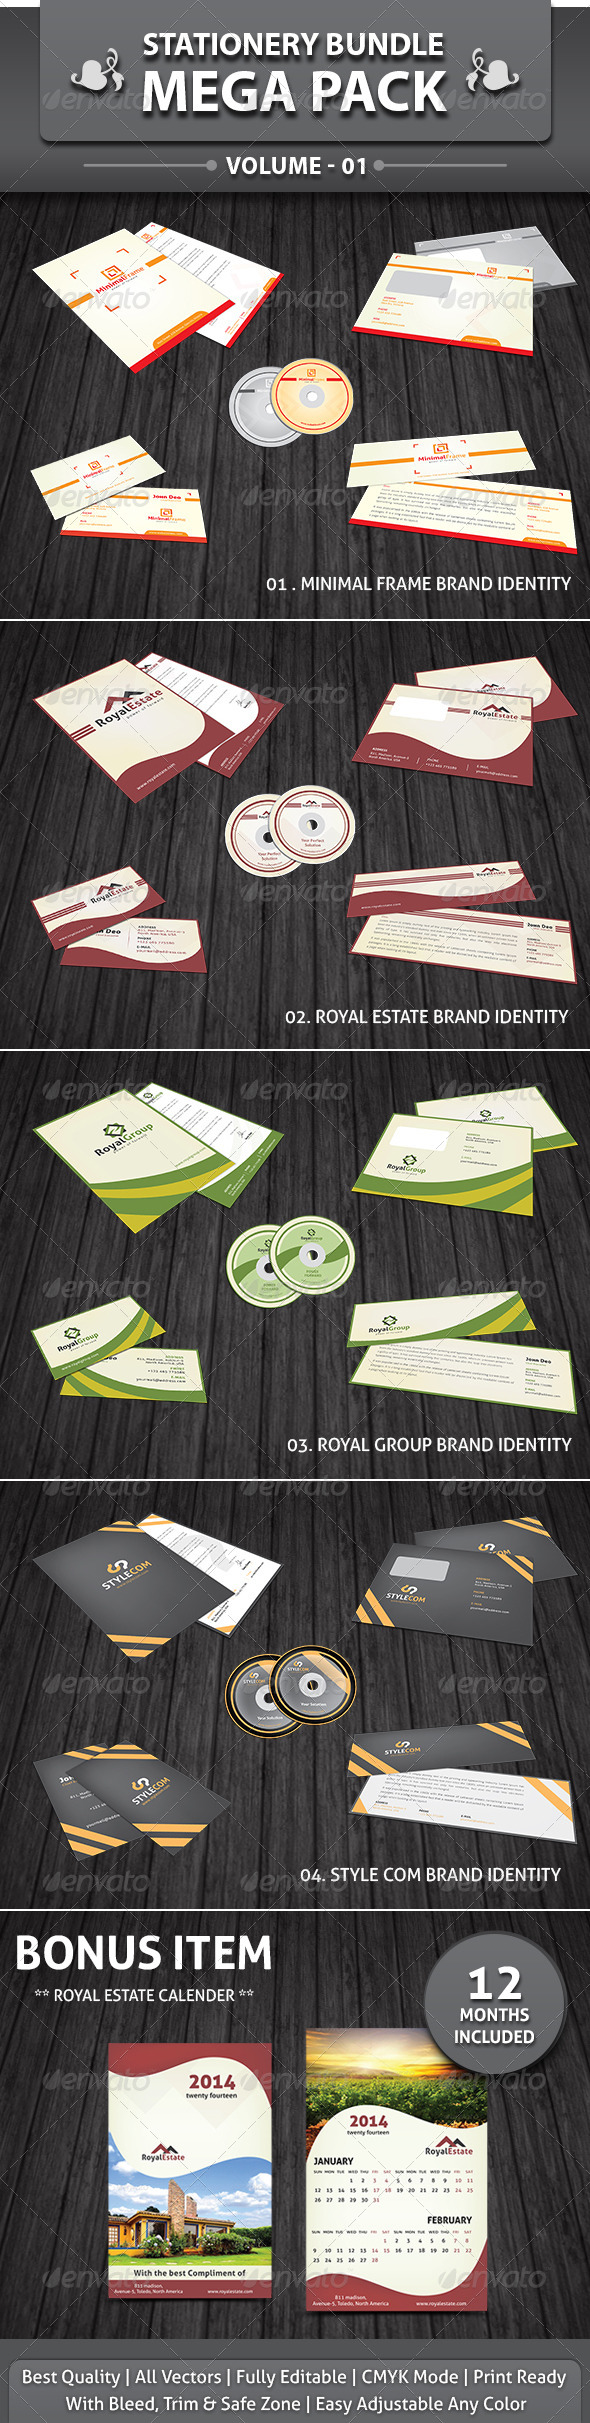 GraphicRiver Stationery Mega Bundle Pack v1 4229600